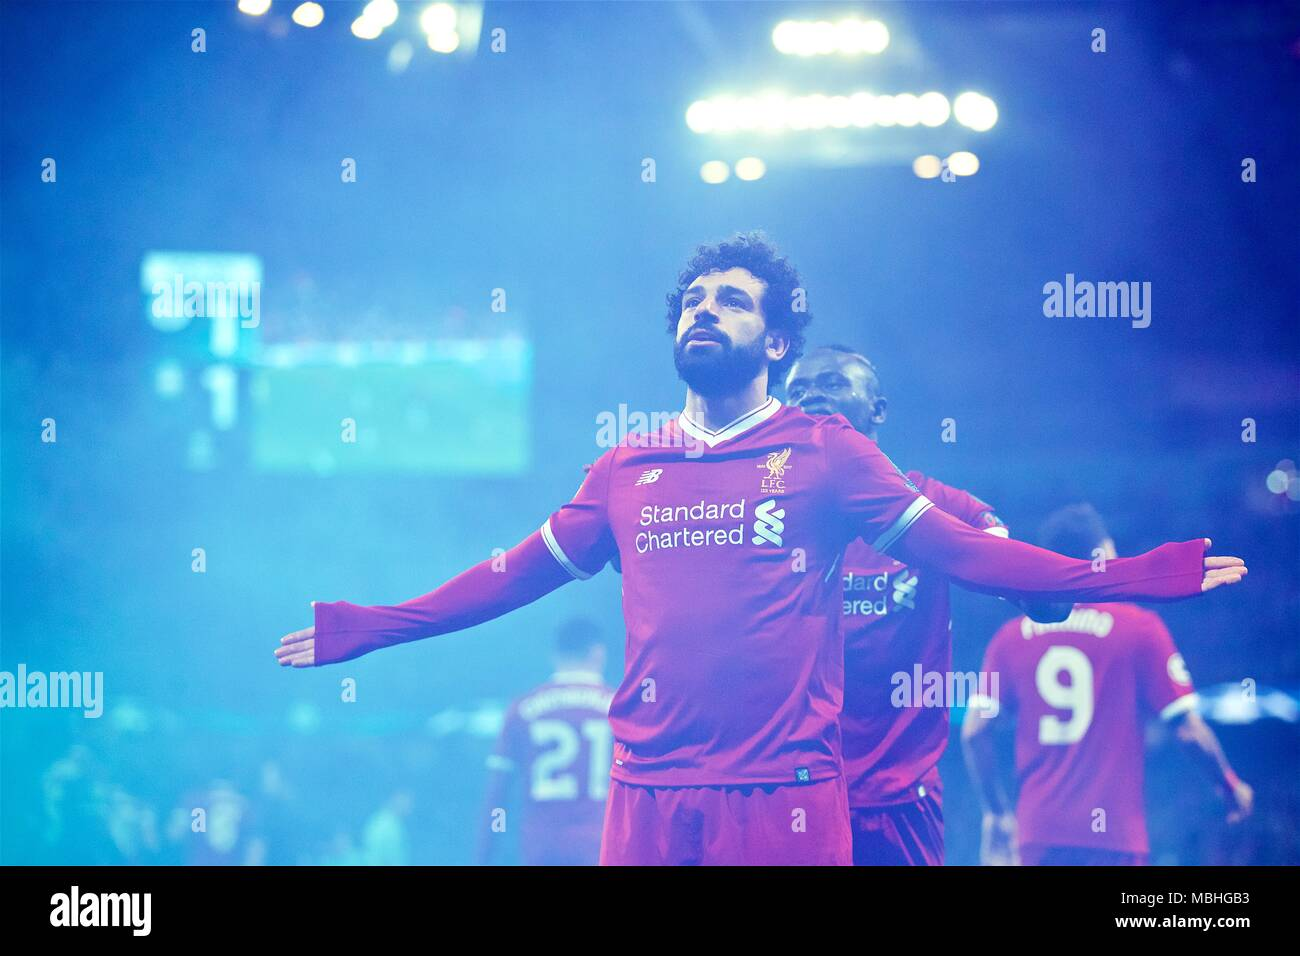 Manchester, UK. 10th Apr, 2018. Liverpool's Mohamed Salah celebrates after scoring during the UEFA Champions League quarterfinal second leg soccer match between Manchester City and Liverpool in Manchester, Britain, on April 10, 2018. Liverpool won 5-1 on aggregate and advanced to the semifinal. Credit: Xinhua/Alamy Live News - Stock Image